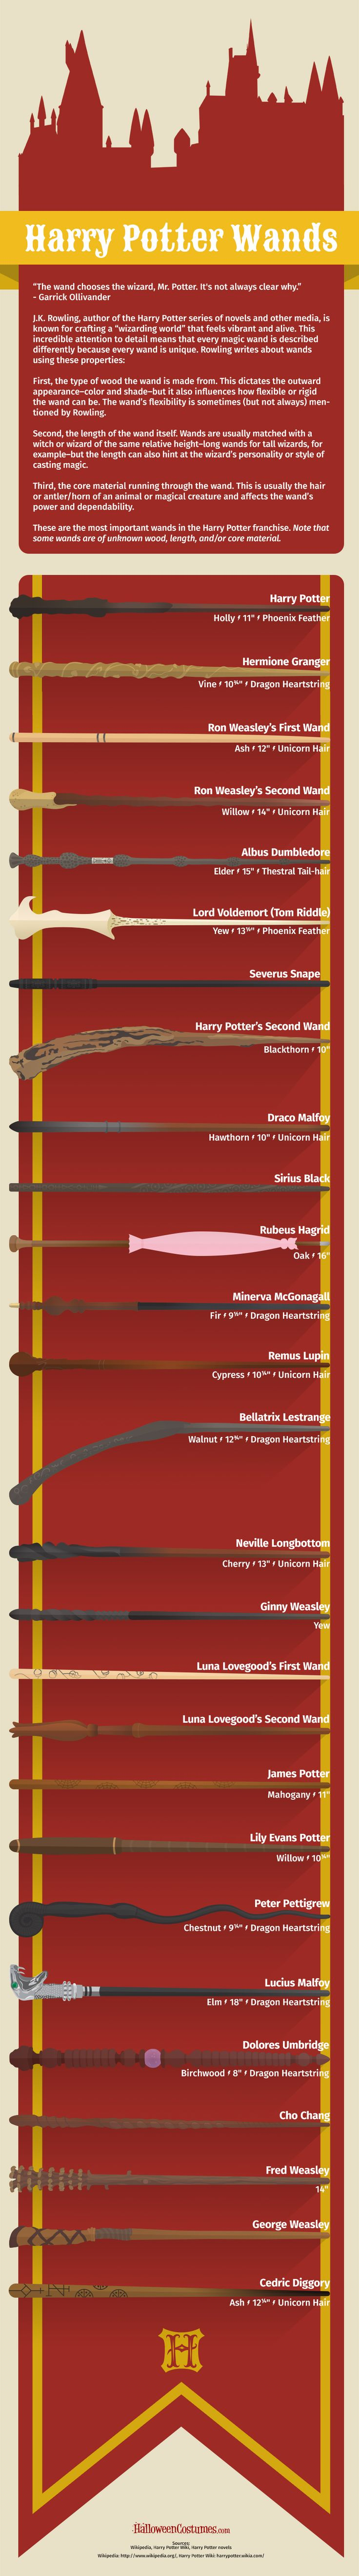 What wand did your favorite Harry Potter carry? - HalloweenCostumes.com